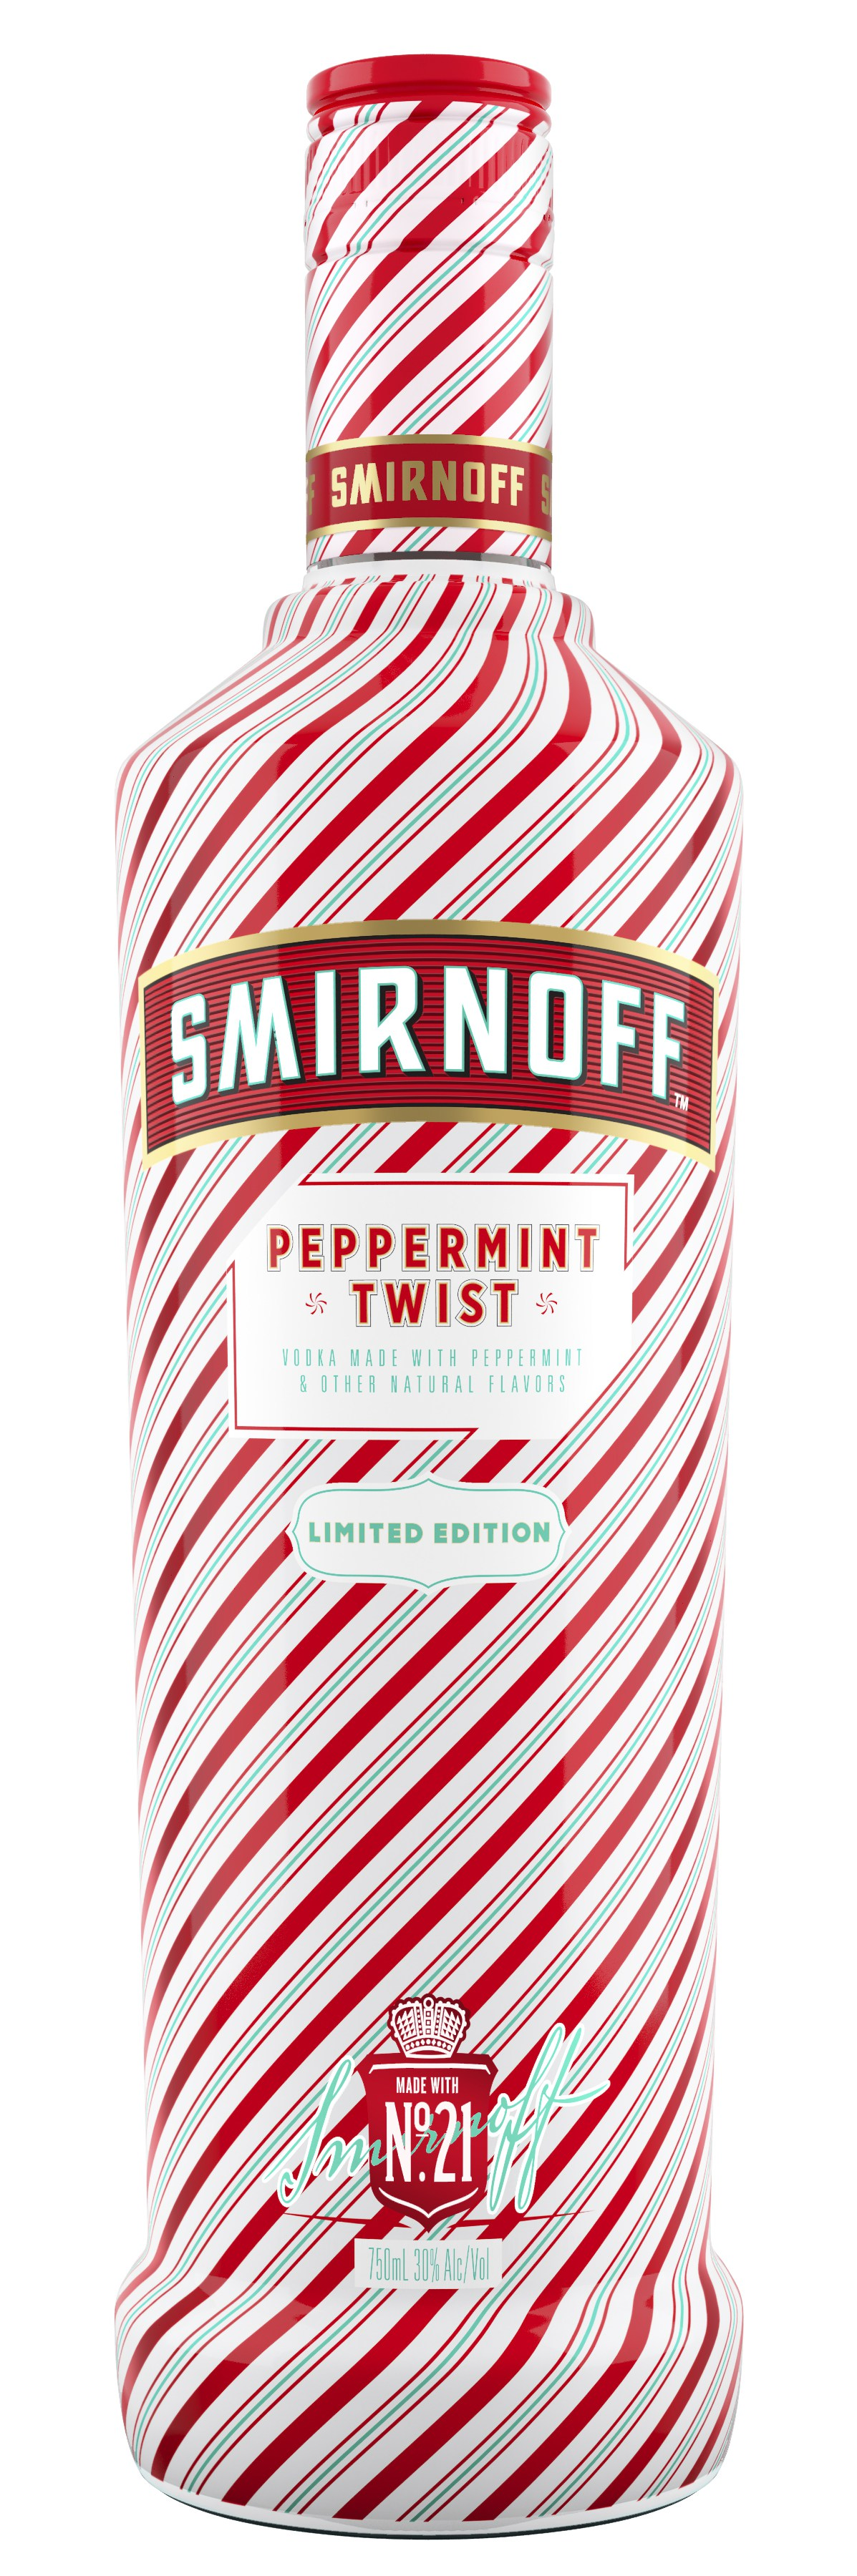 SMIRNOFF Peppermint Twist Cocktail Recipes - Who Said Nothing in Life is Free?